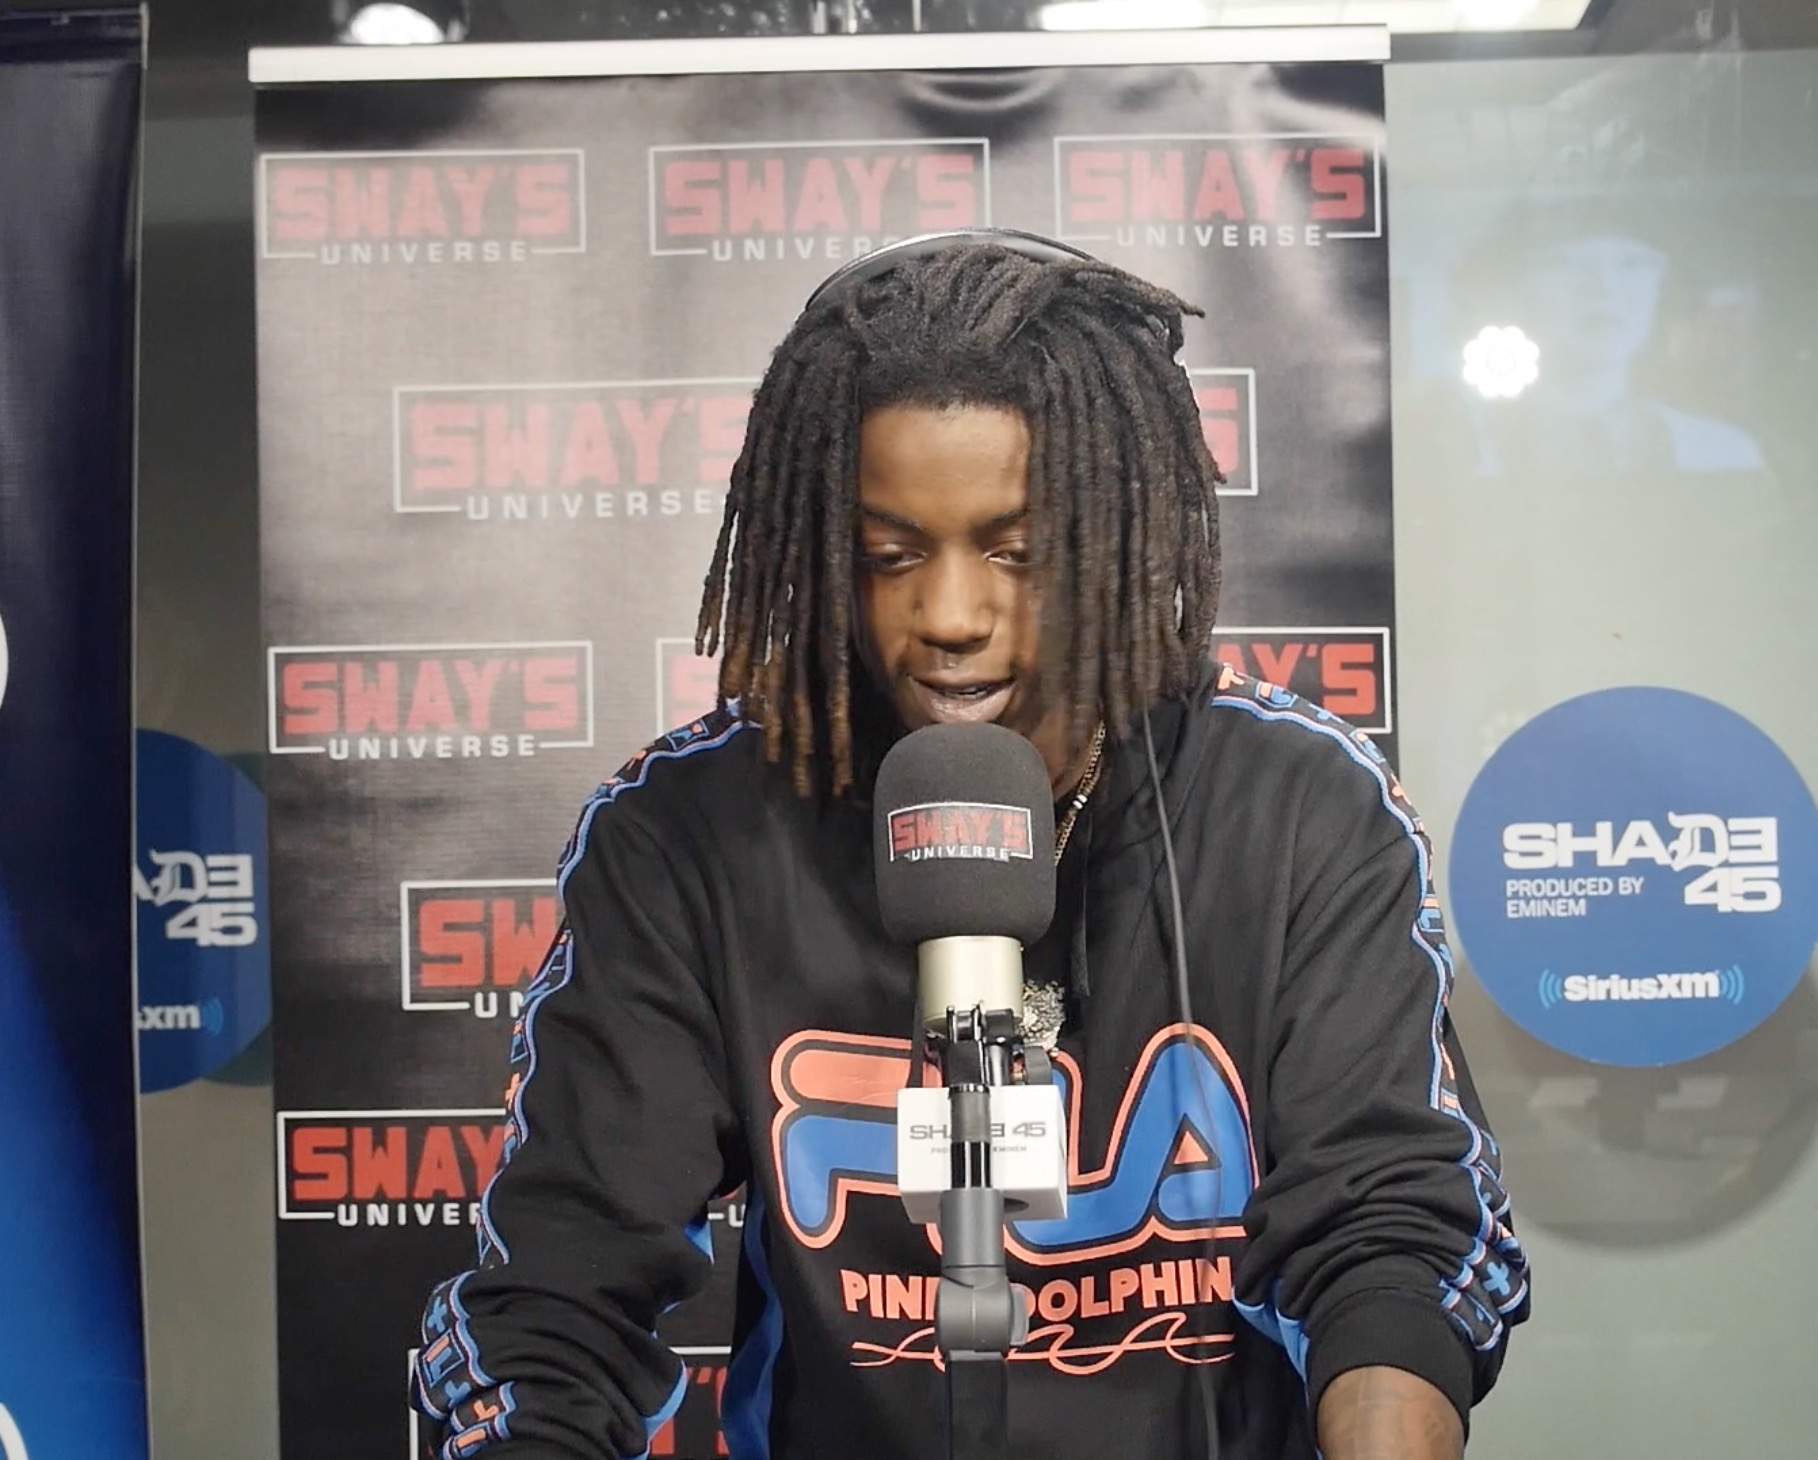 Mobile AL Native, OMB Peezy Stepped into the Friday Fire Cypher